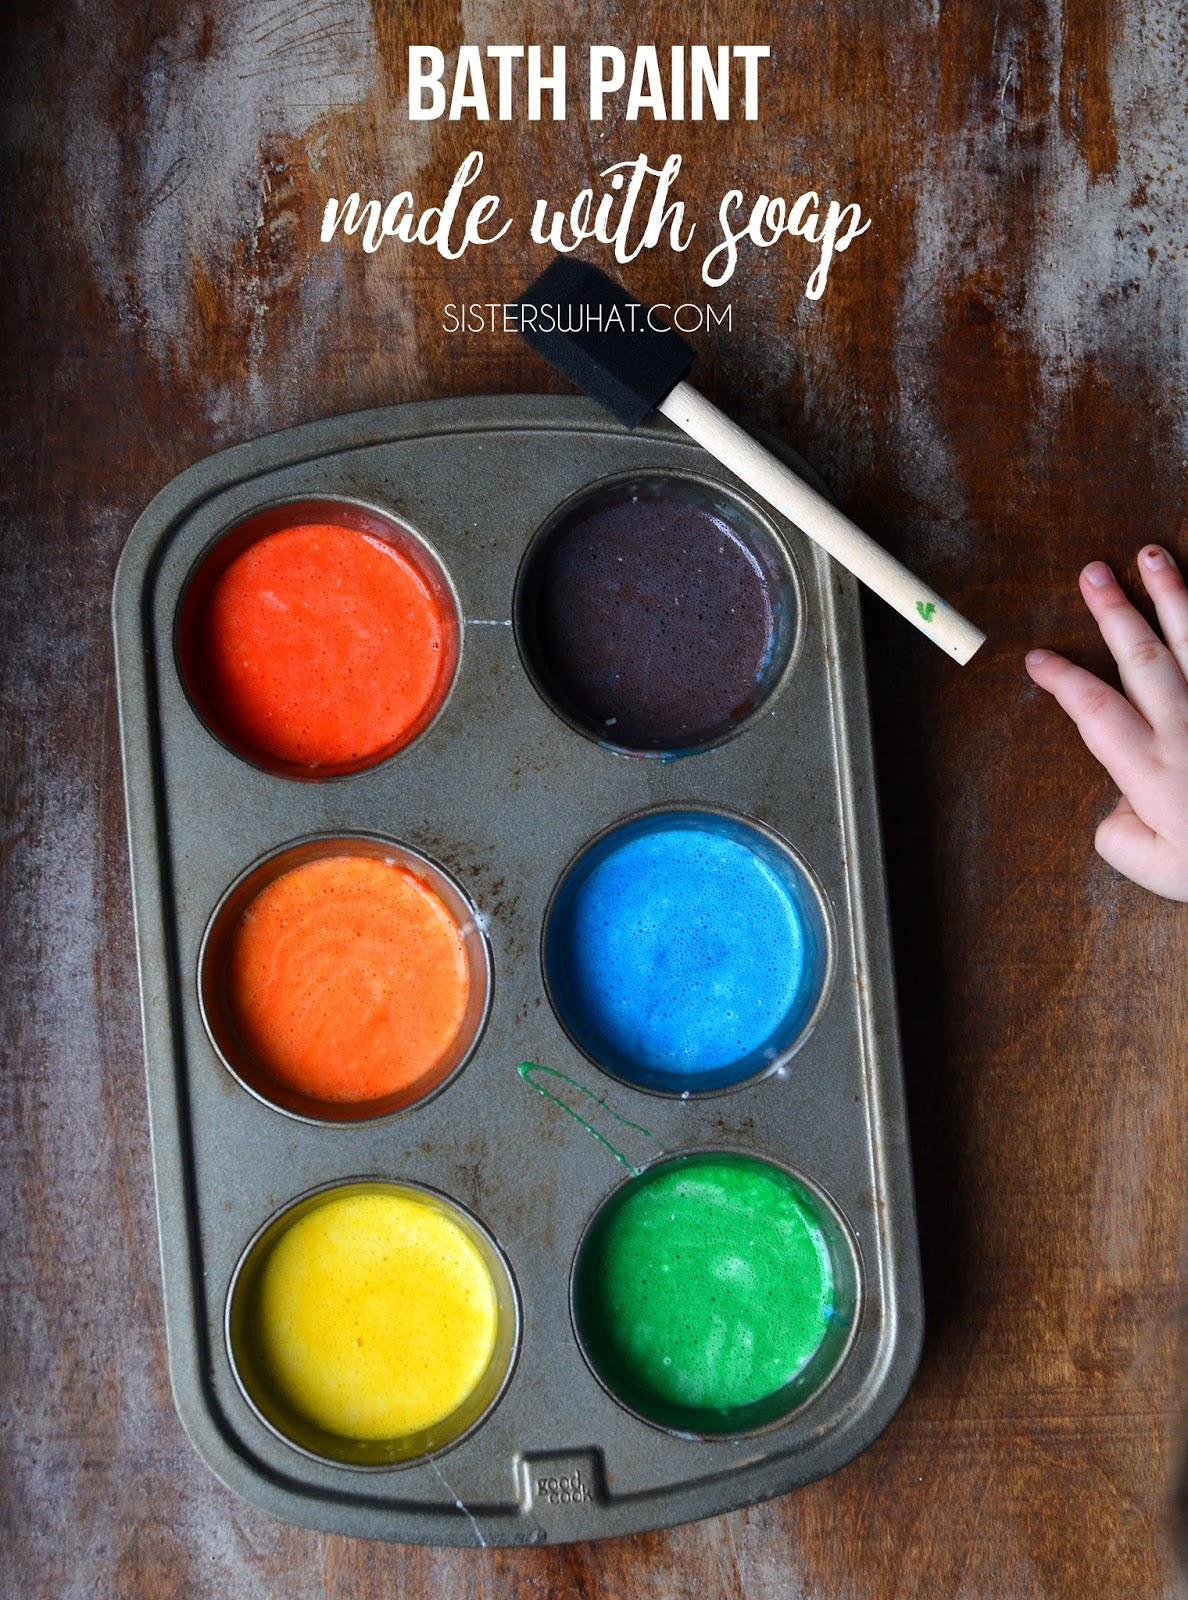 Homemade Bath Paint Soap and Cornstarch, perfect as a rainy day activity